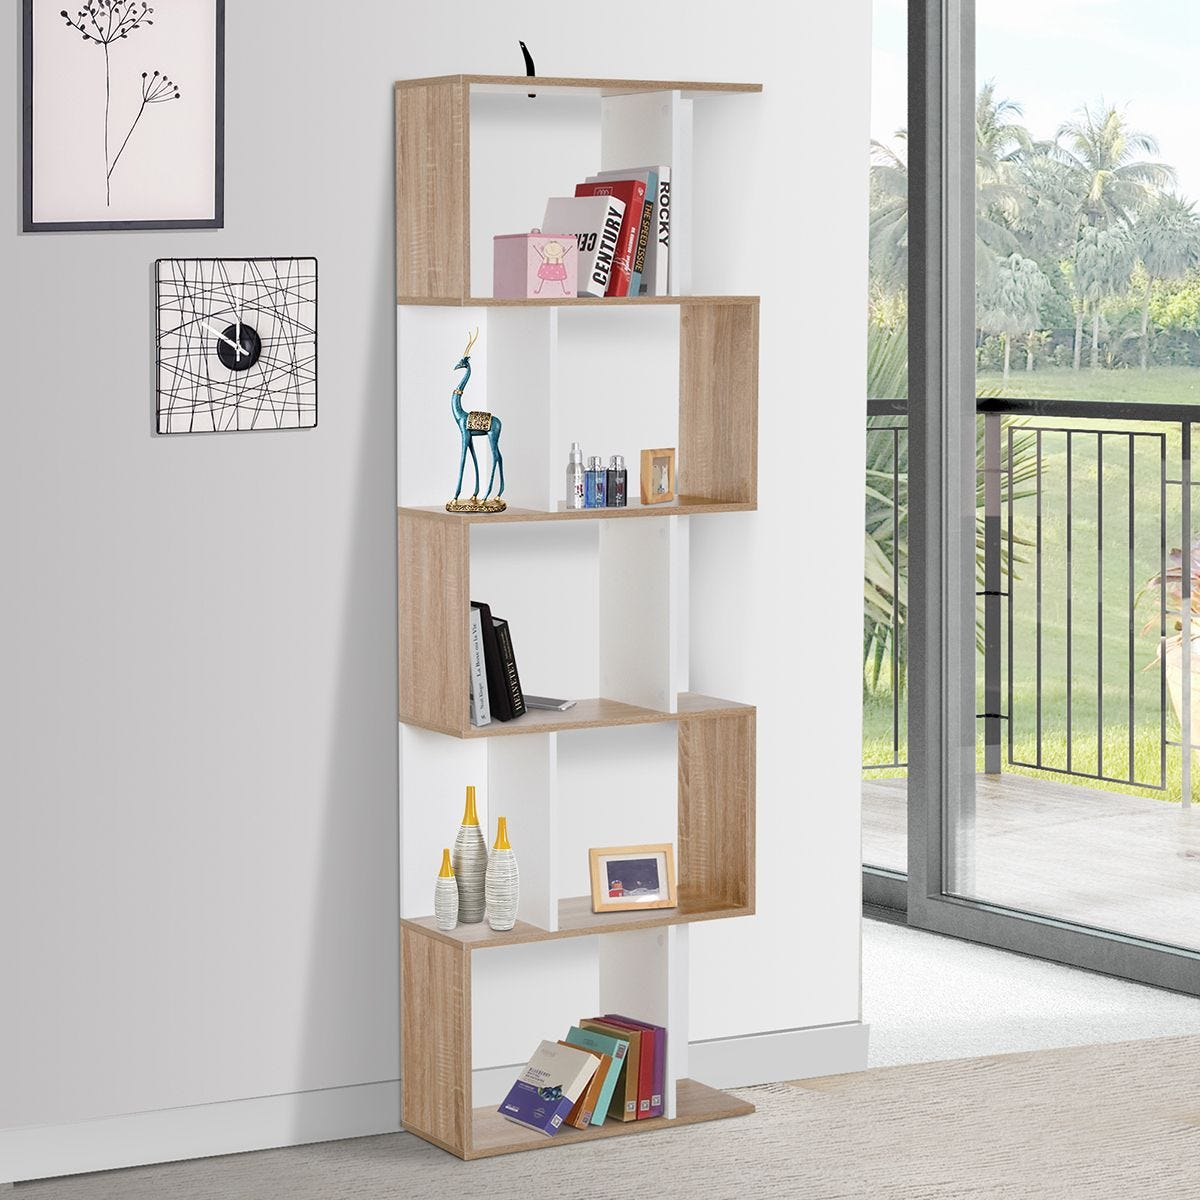 5 Tier Bookcase Storage Display Shelving S Shape design Unit Divider Particle Wood Effect and White